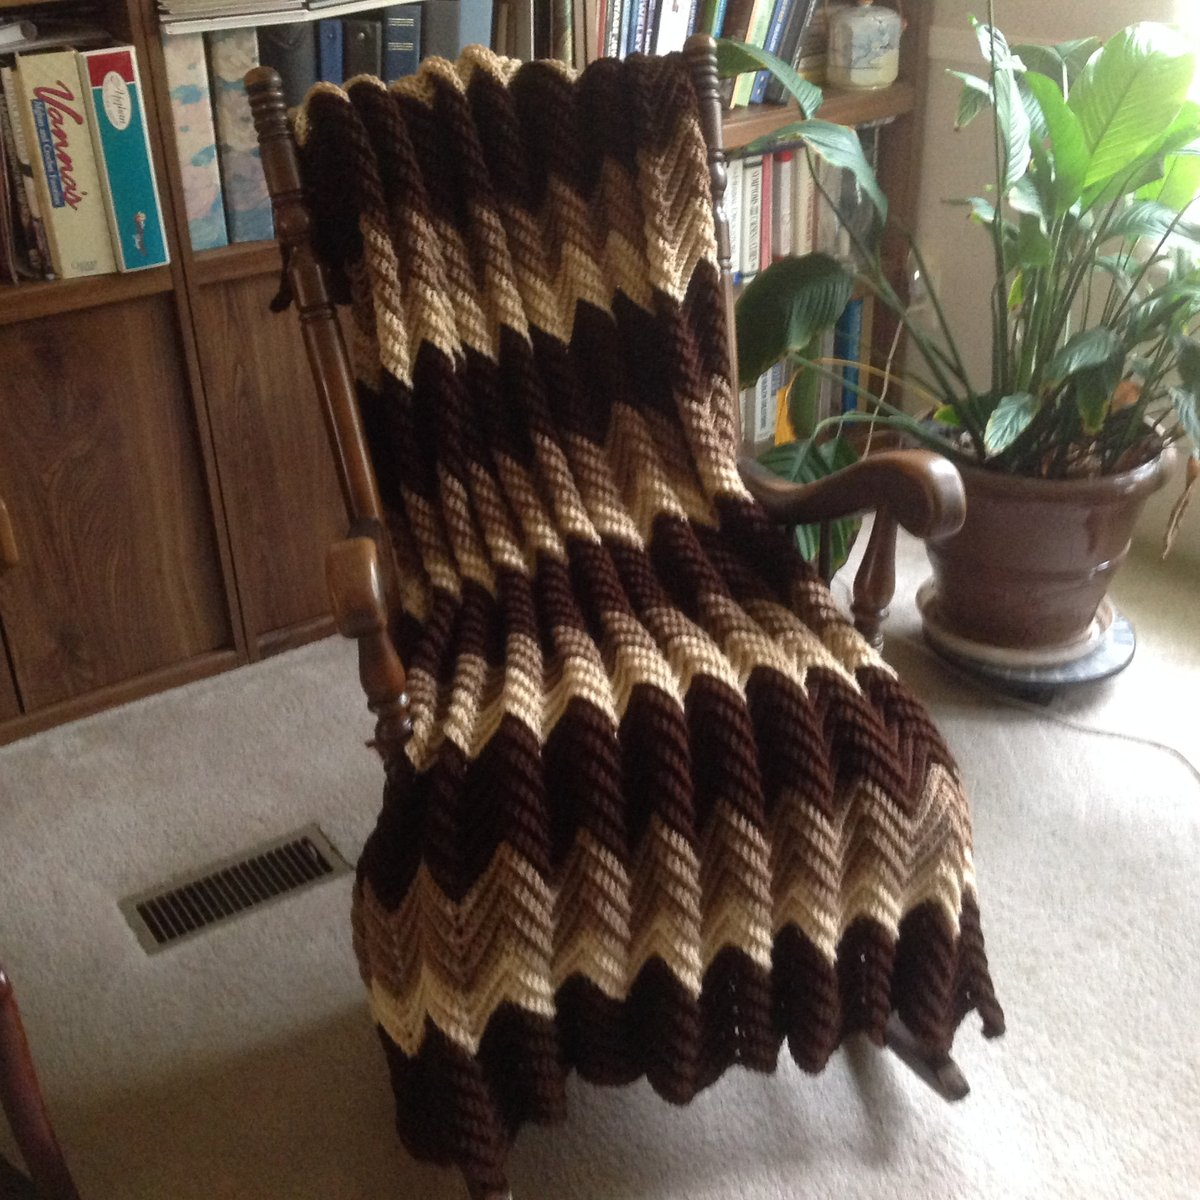 Coffee & Cream Chevron Afghan/Throw/Blanket, Mid-size, Handmade, Teen/Youth to Nursing Home Gift, Machine Wash, Free Shipping, Made in USA http://tuppu.net/8eacf2f8 #YarnQueens #Etsy #FreeShipping pic.twitter.com/st6KFP3JFM